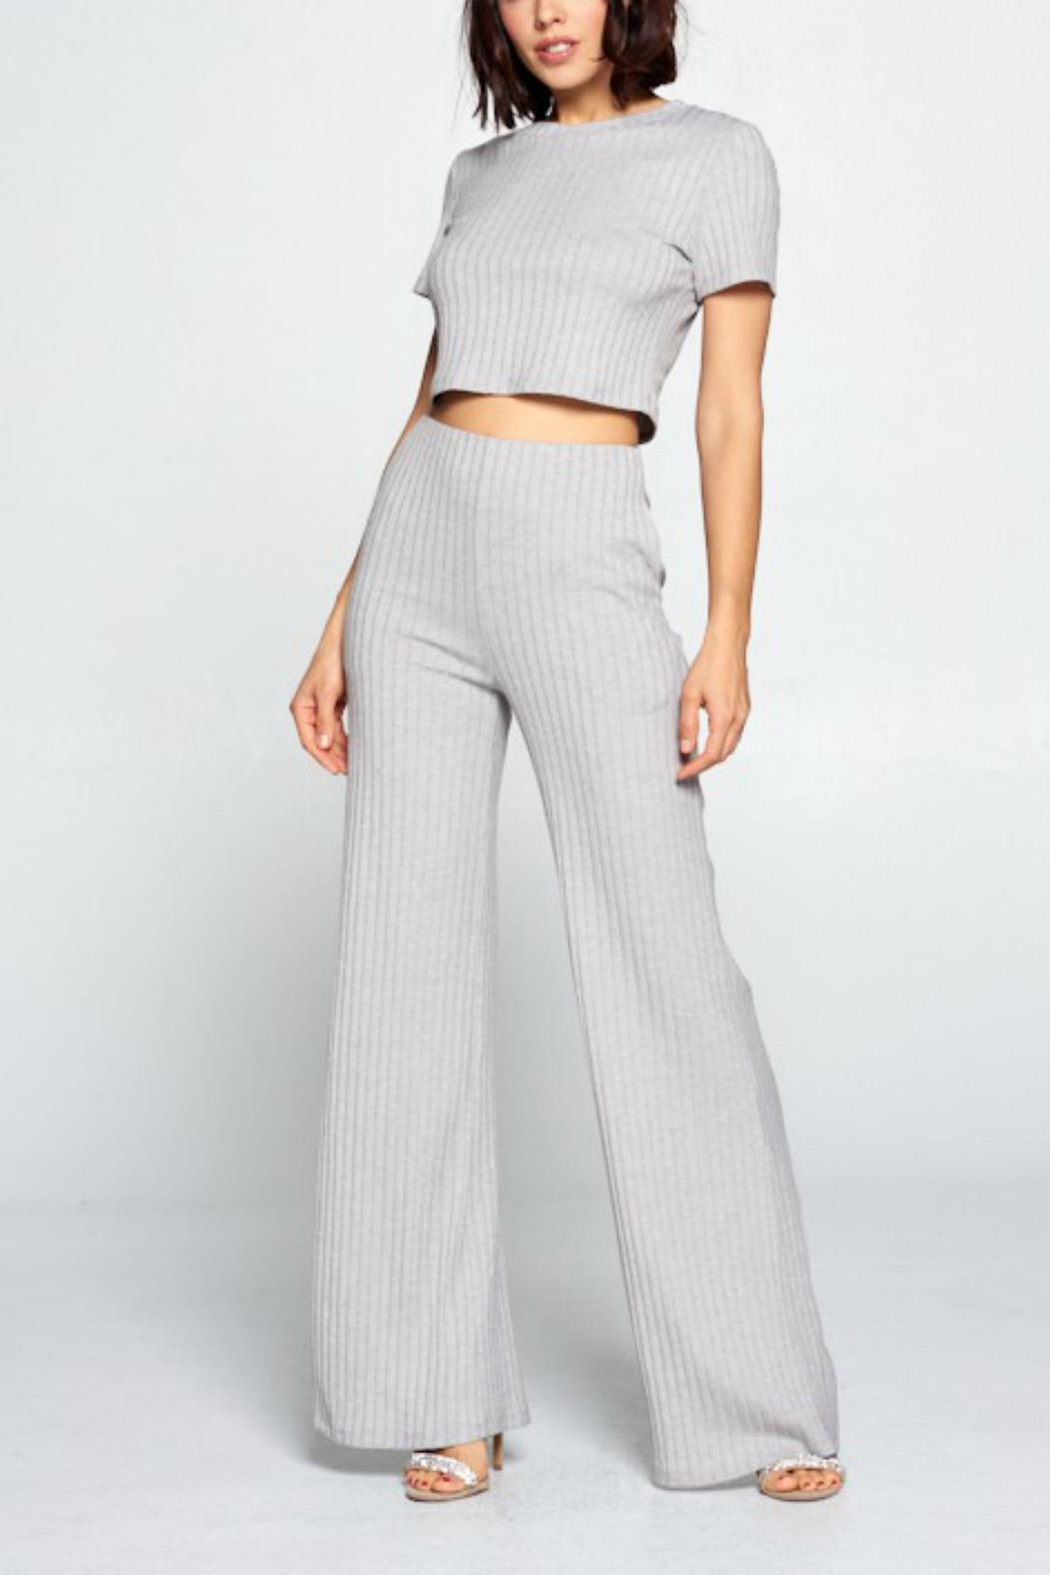 Pretty Little Things Ribbed Knit Flares - Main Image